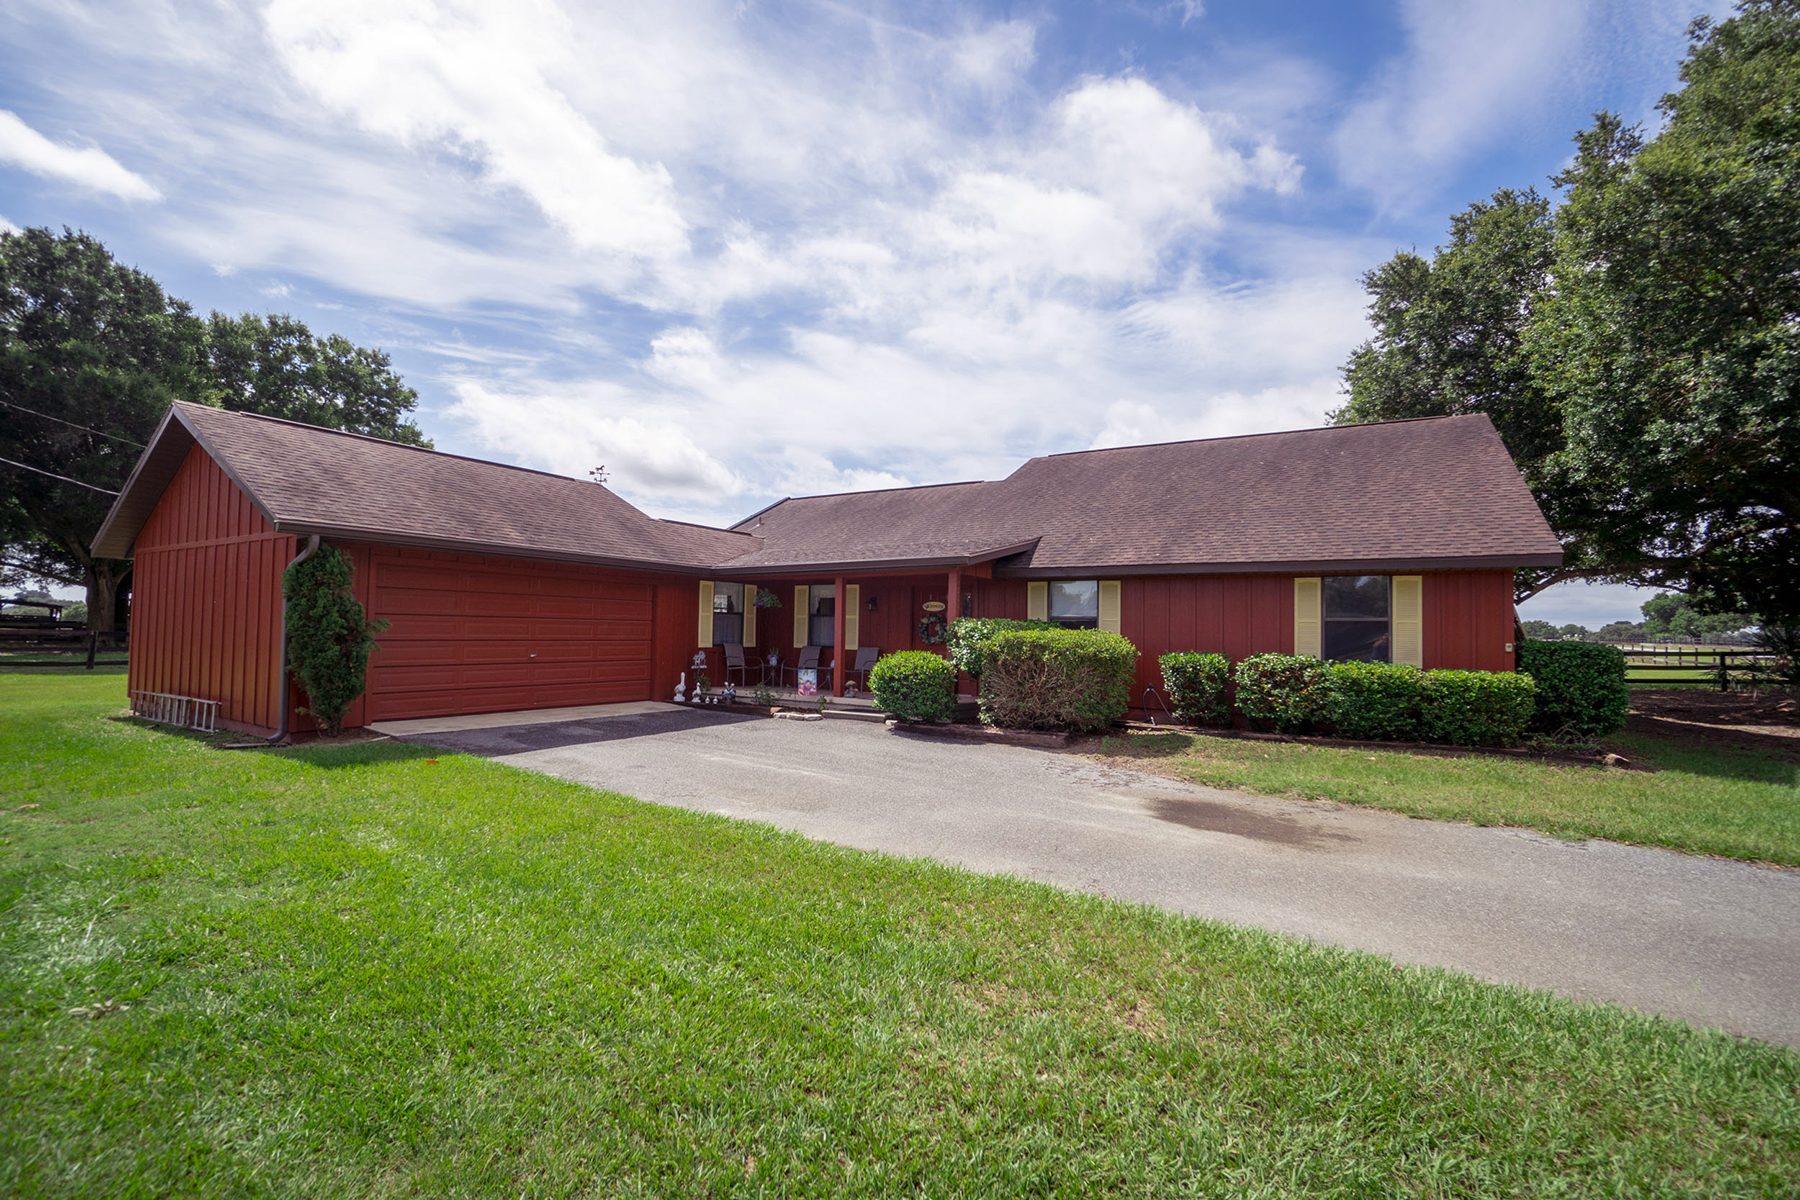 Single Family Homes por un Venta en OCALA 11533 N Magnolia Ave, Ocala, Florida 34475 Estados Unidos